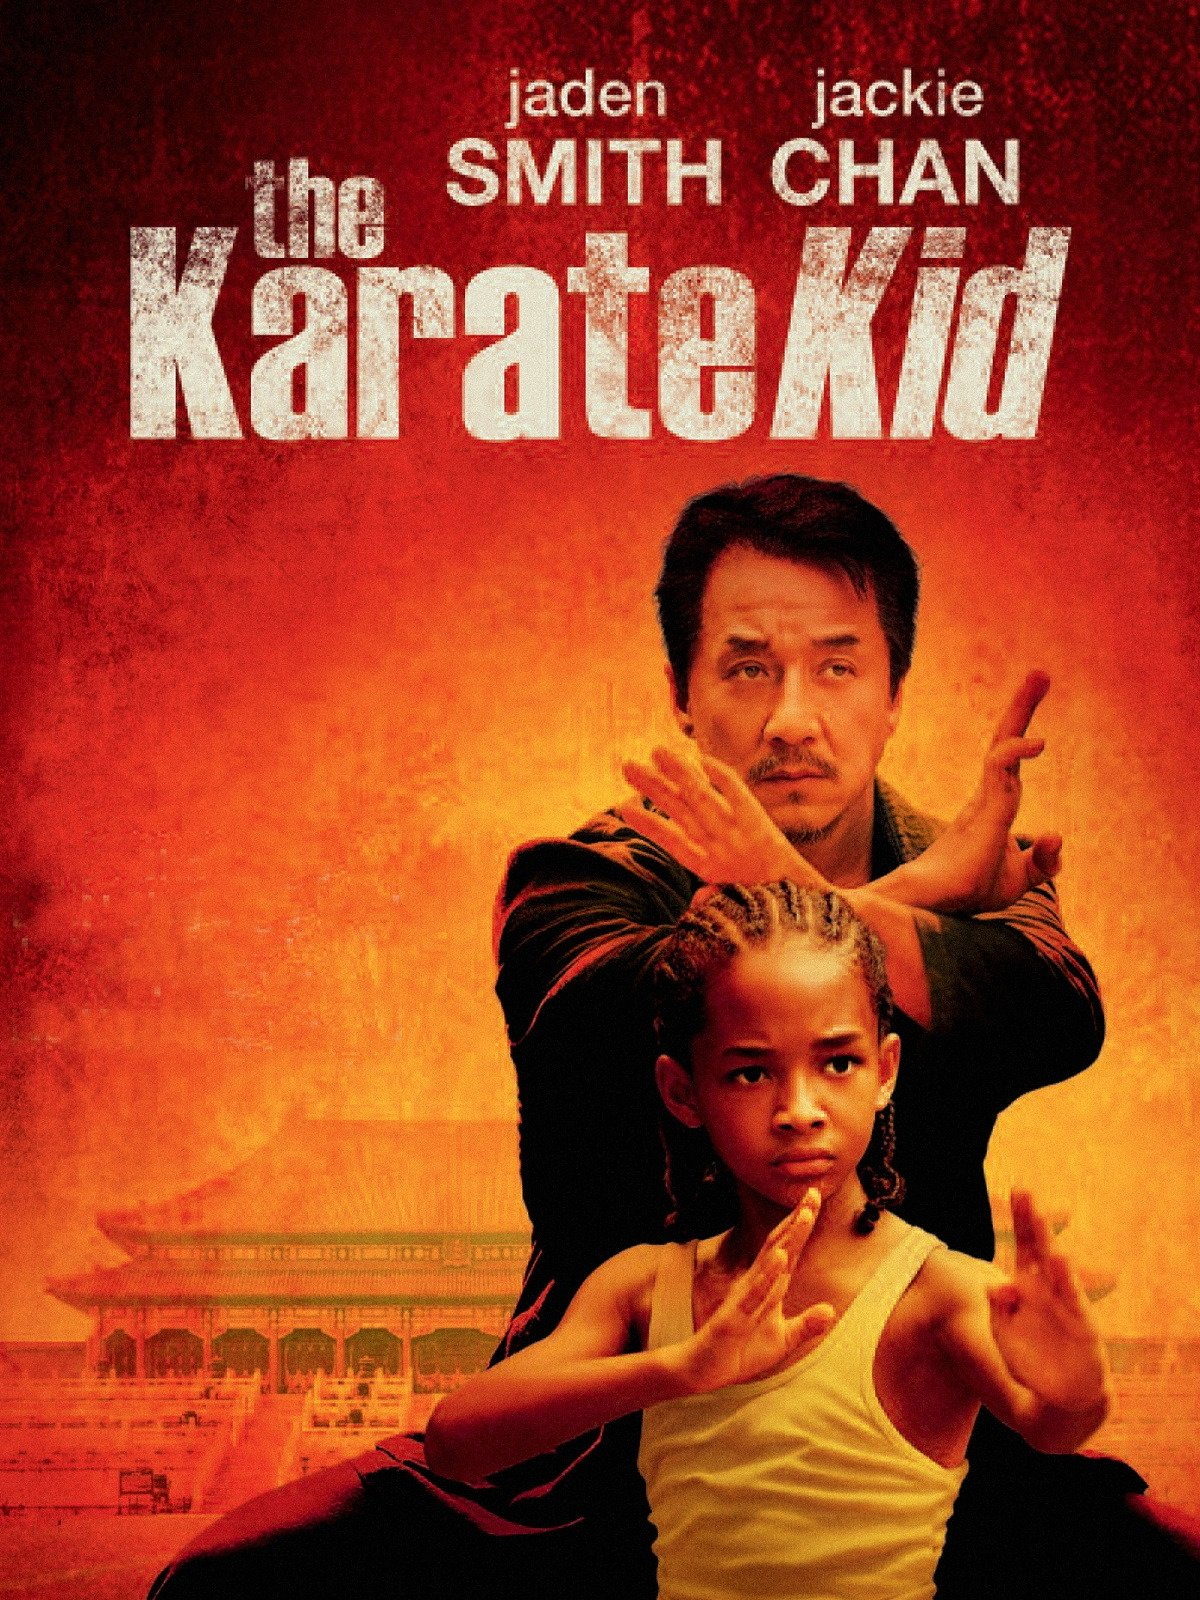 karate kid 2010 online free watch